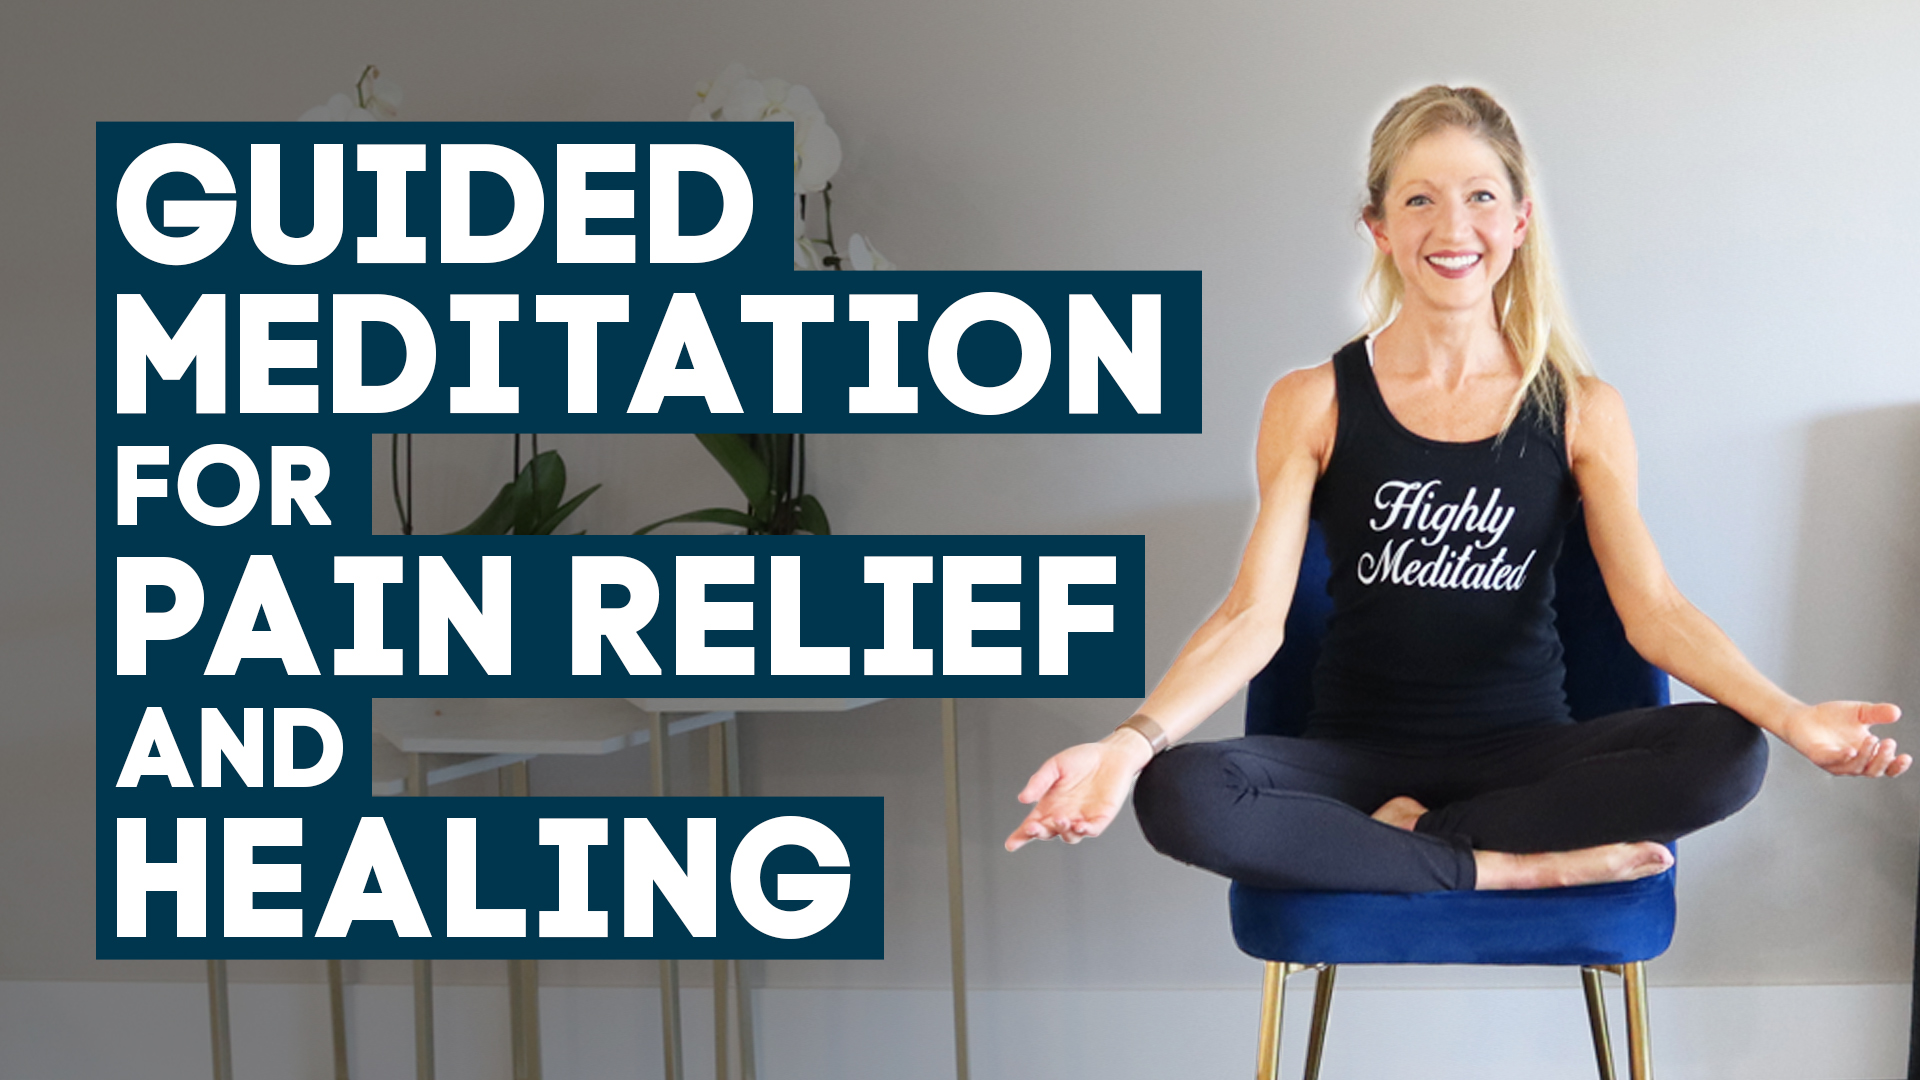 guided meditation for pain relief